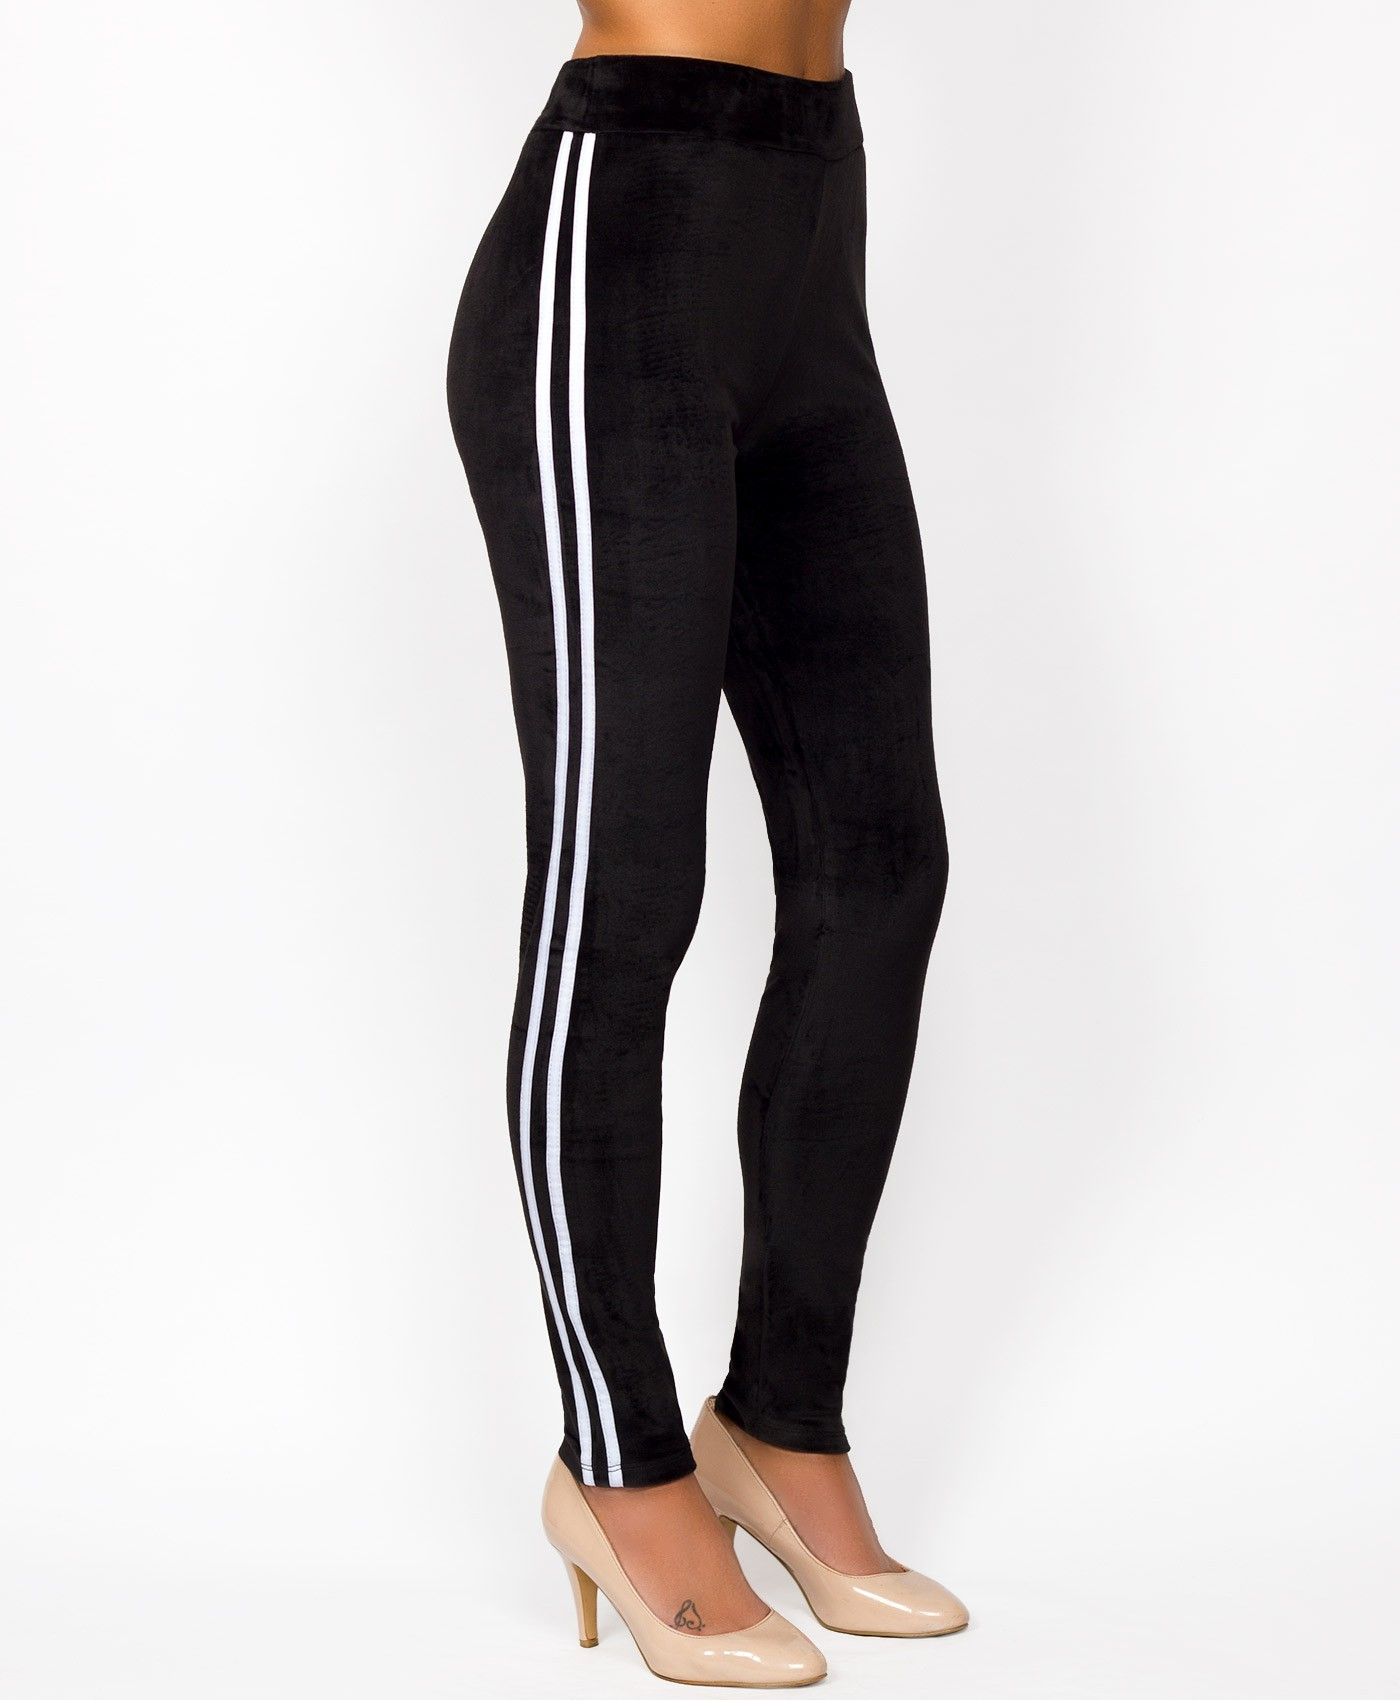 Black-Velvet-Side-Stripe-Leggings-2